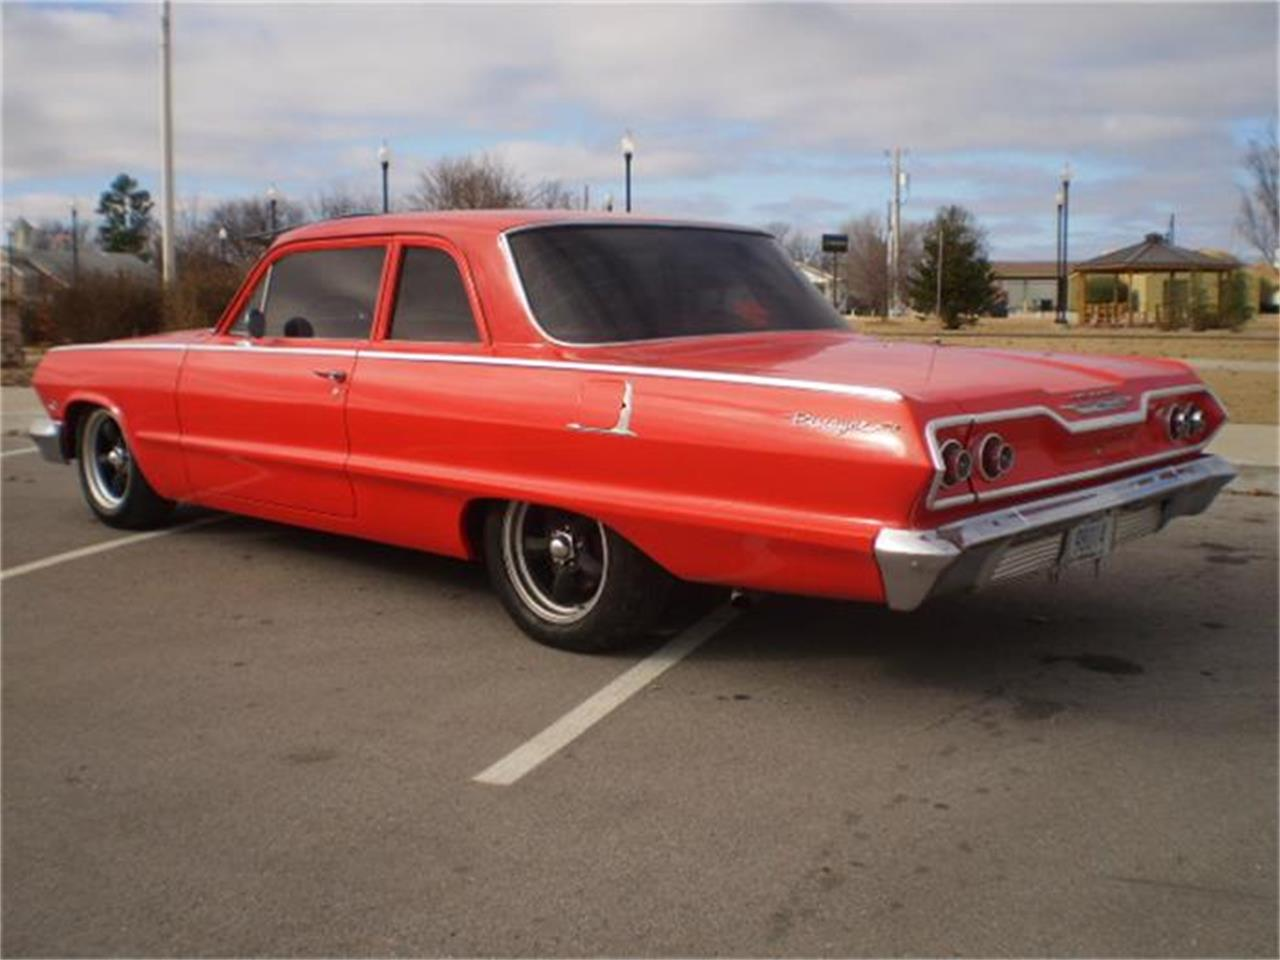 Large Picture of '63 Biscayne located in Oklahoma - $11,900.00 - D6MA